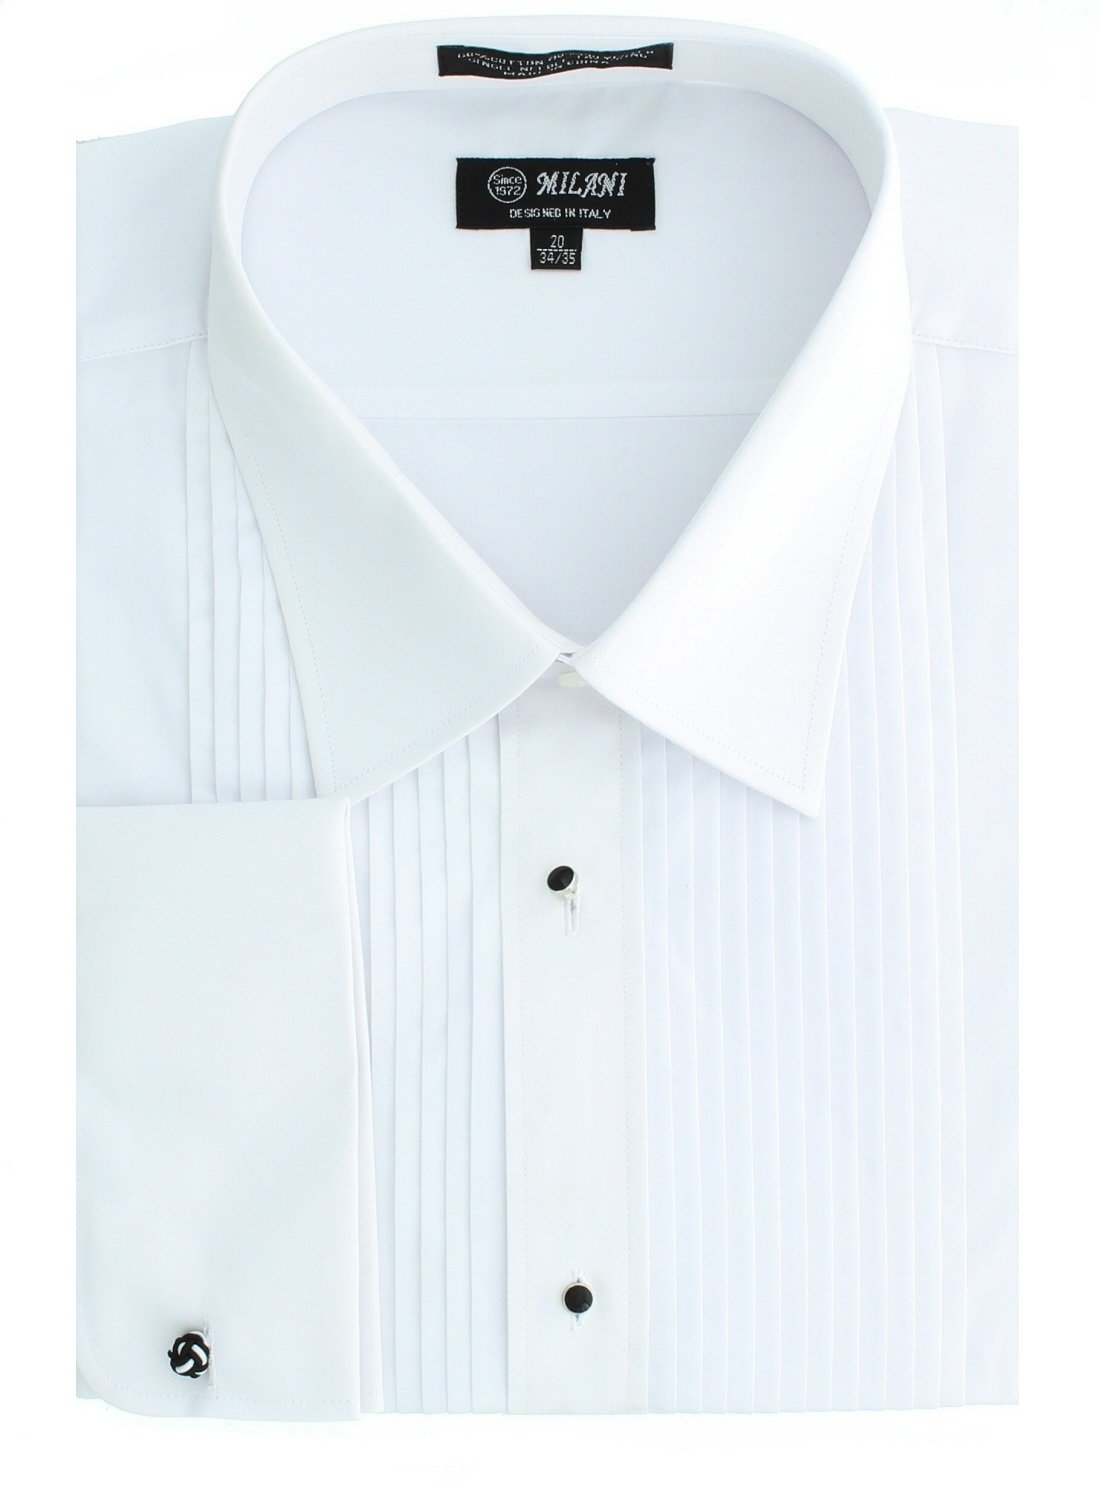 Milani Men's Tuxedo Shirt With French Cuffs 15.5'' 32/33 White by Milani